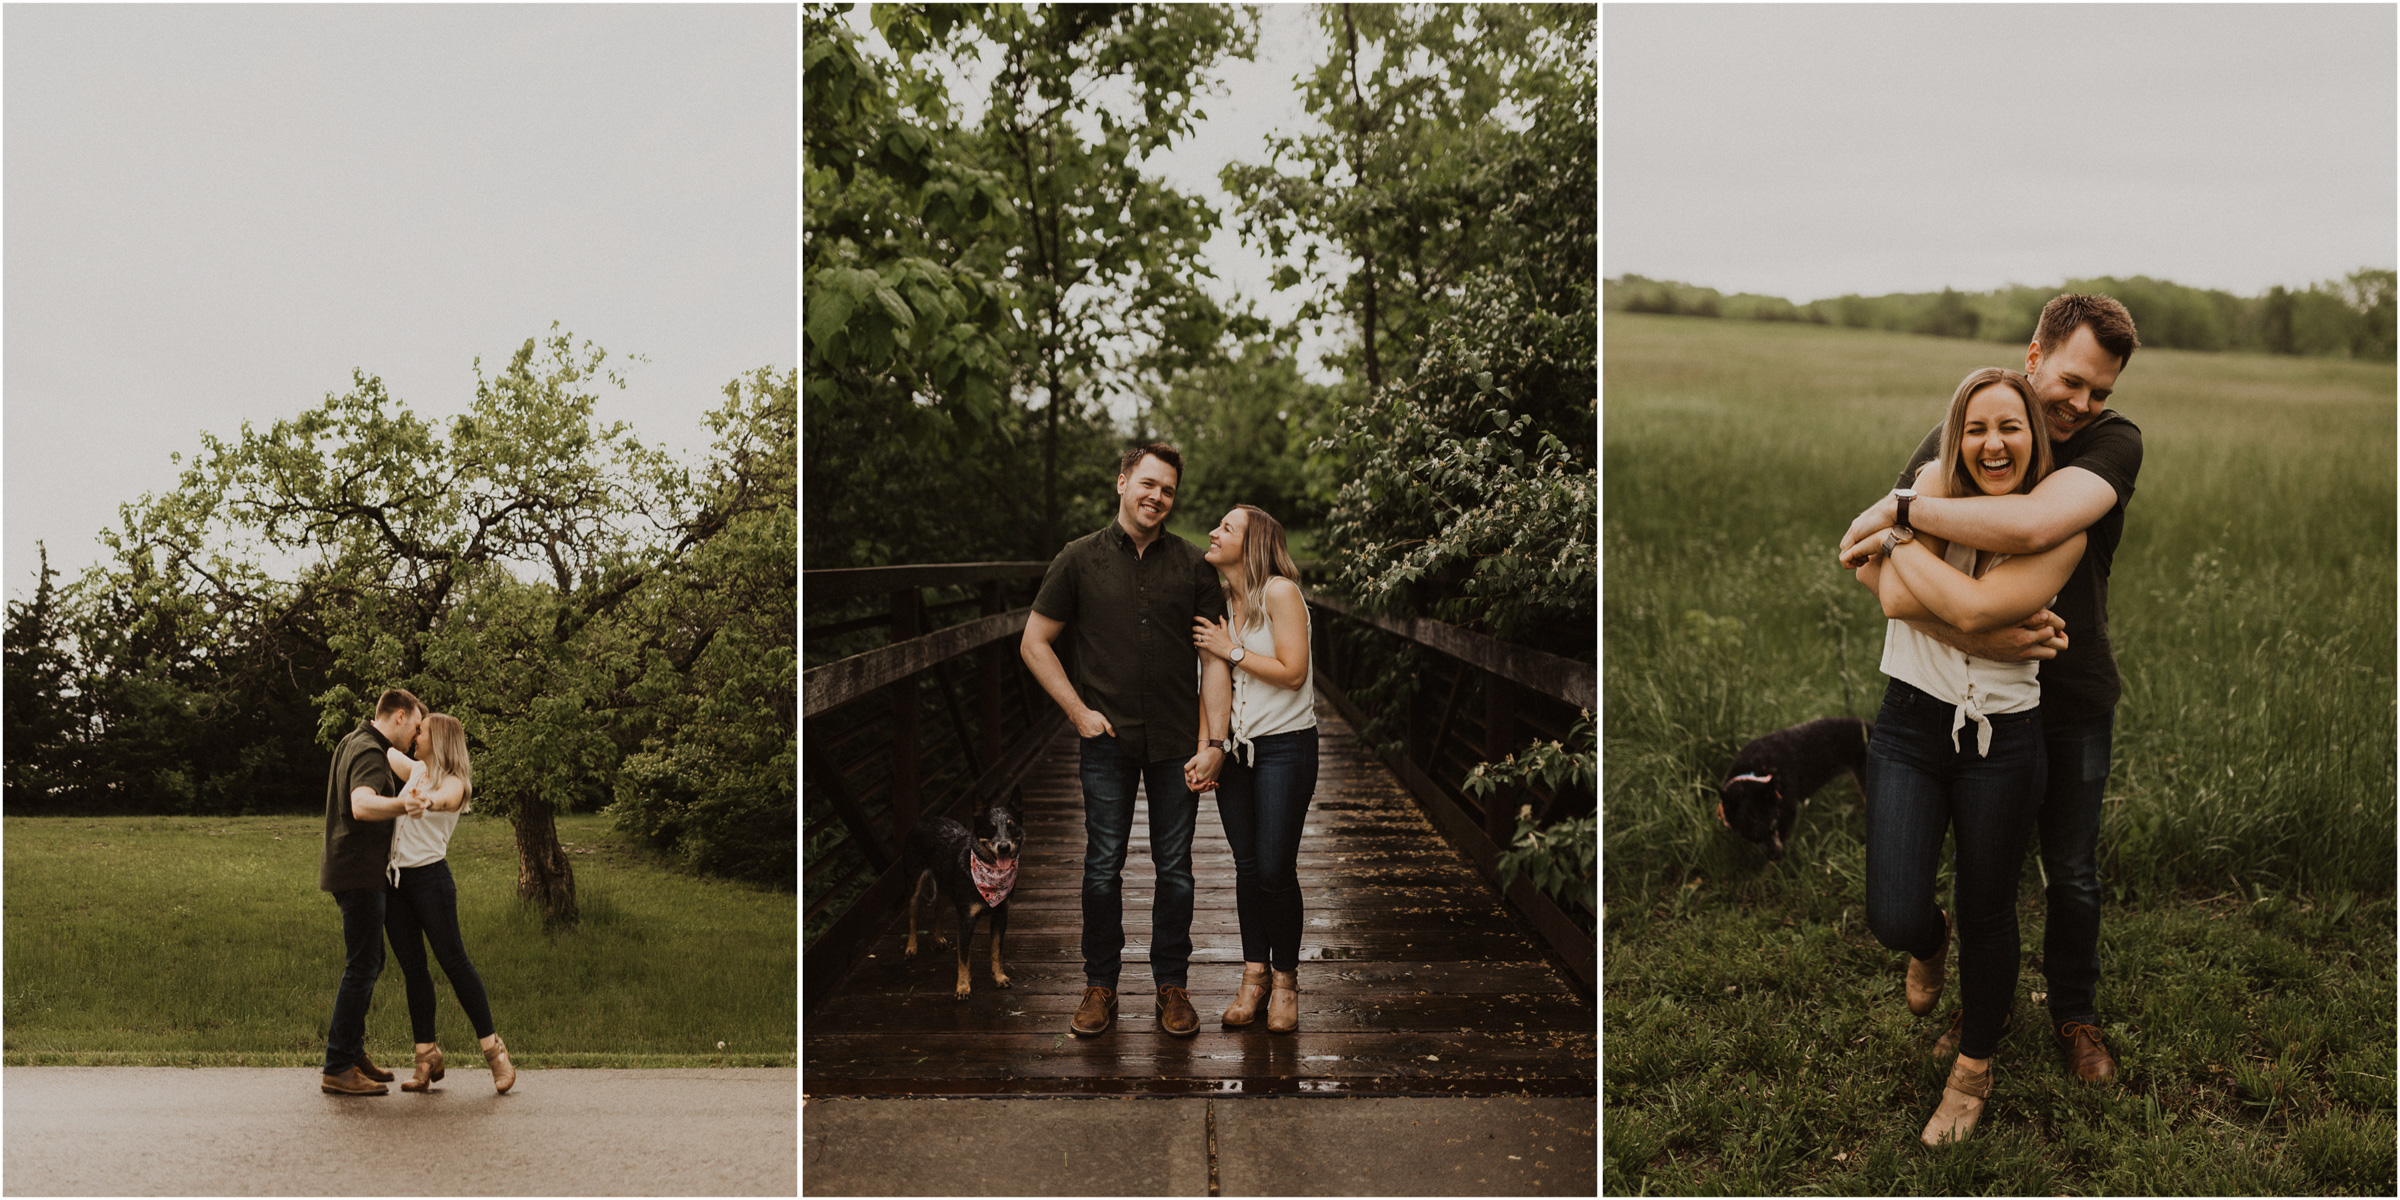 alyssa barletter photography shawnee mission park engagement session photographer sunset-2.jpg